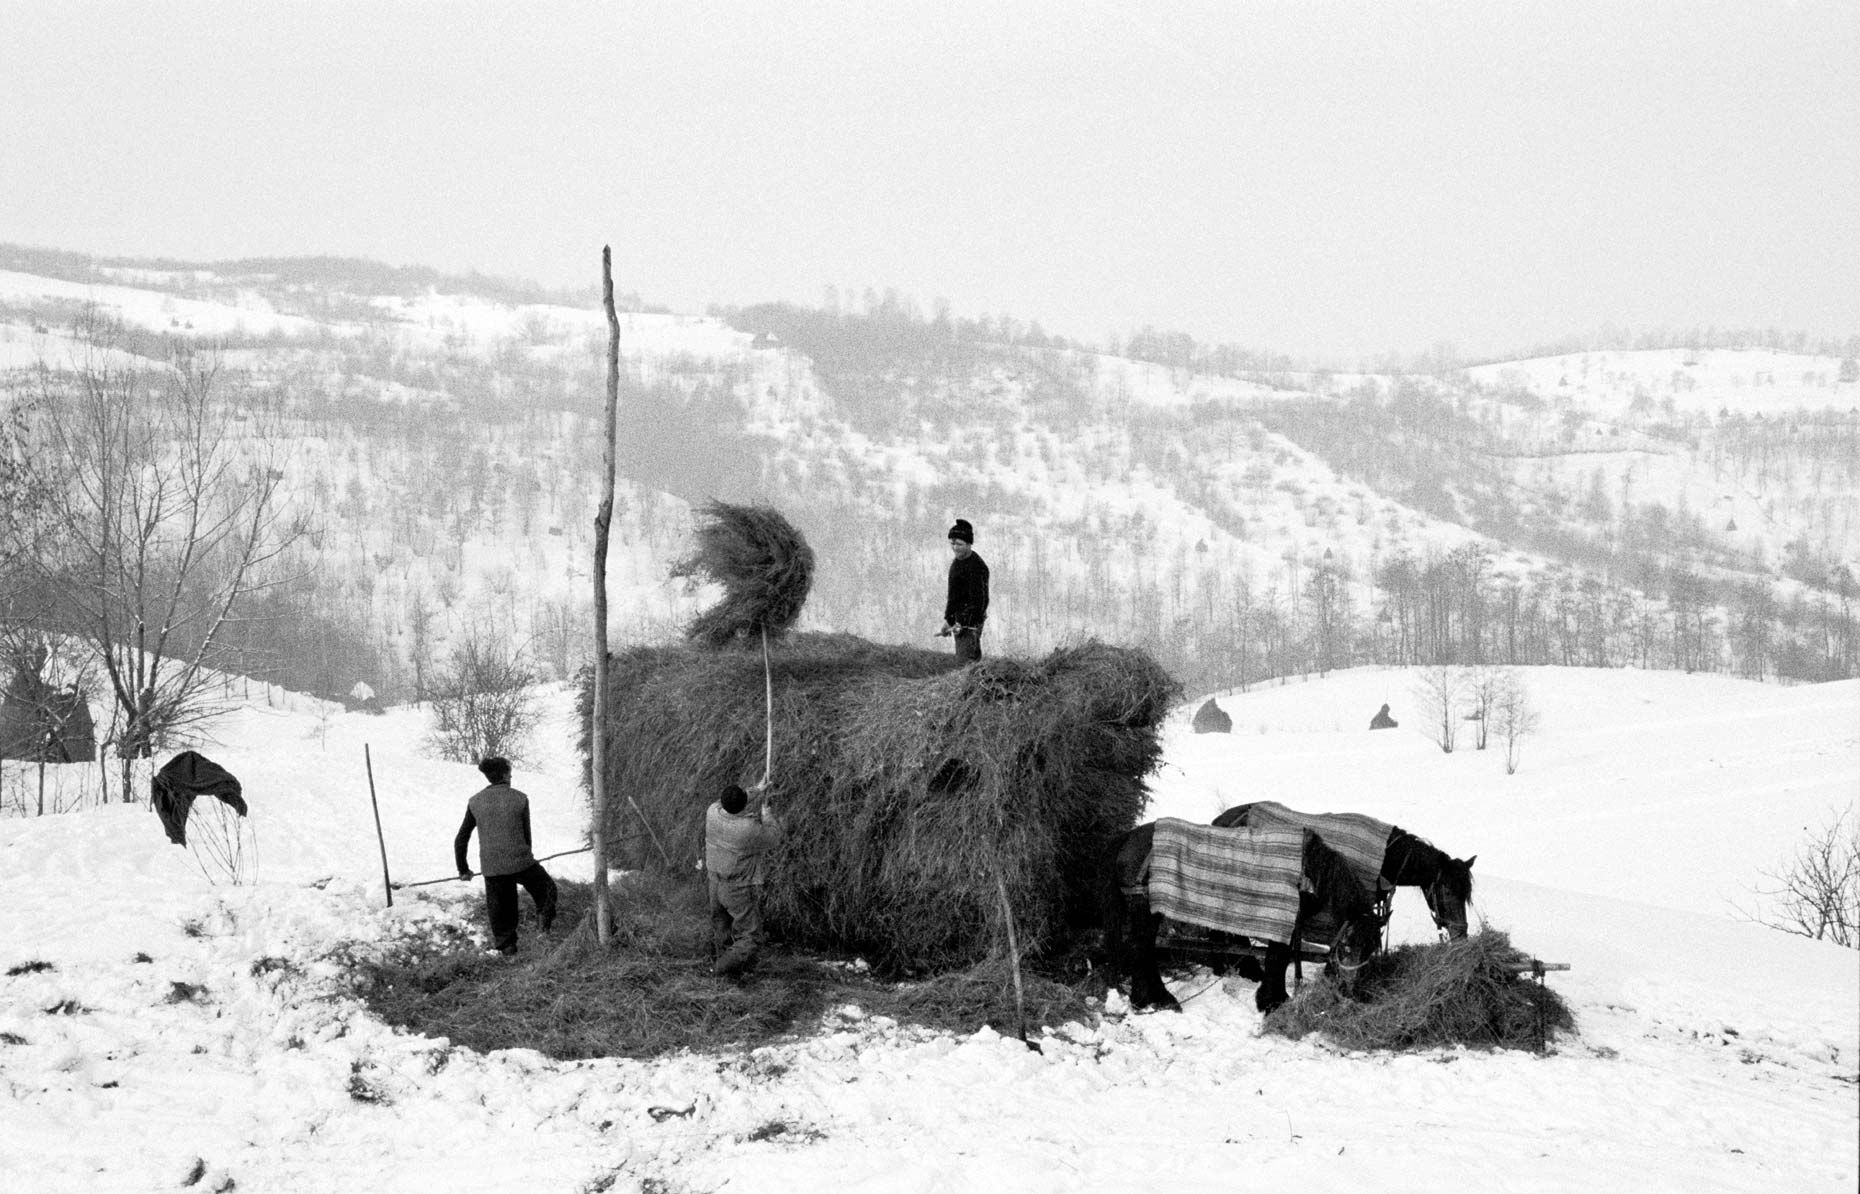 014_Master_Winter_Haymaking_xpan-001